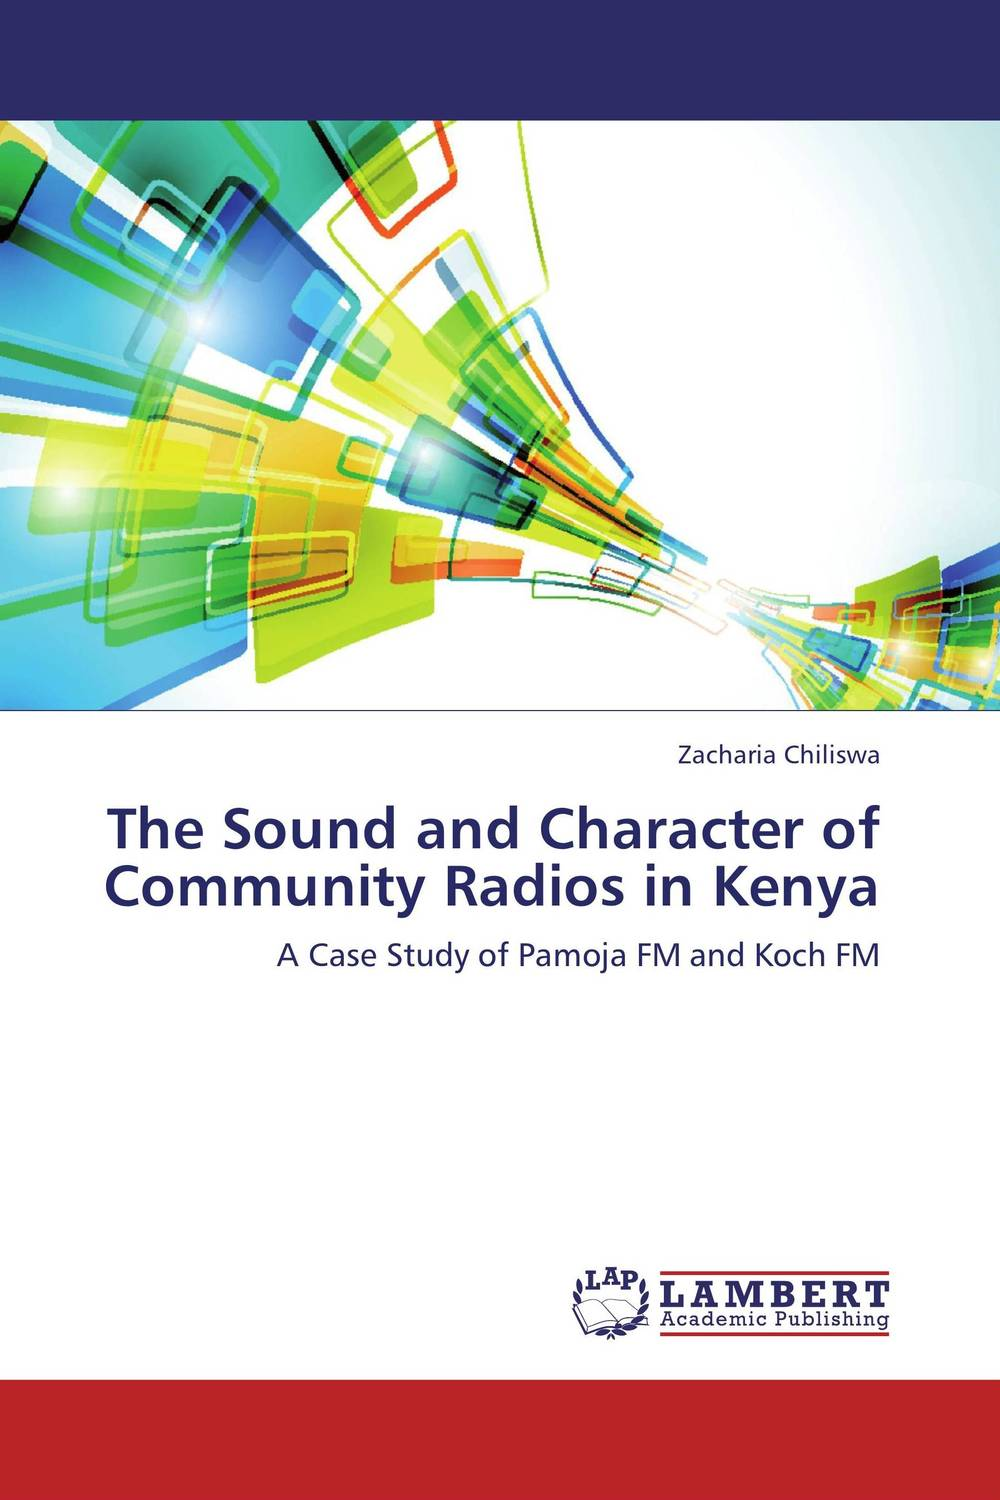 The Sound and Character of Community Radios in Kenya governance and development roles of community radio in ethiopia